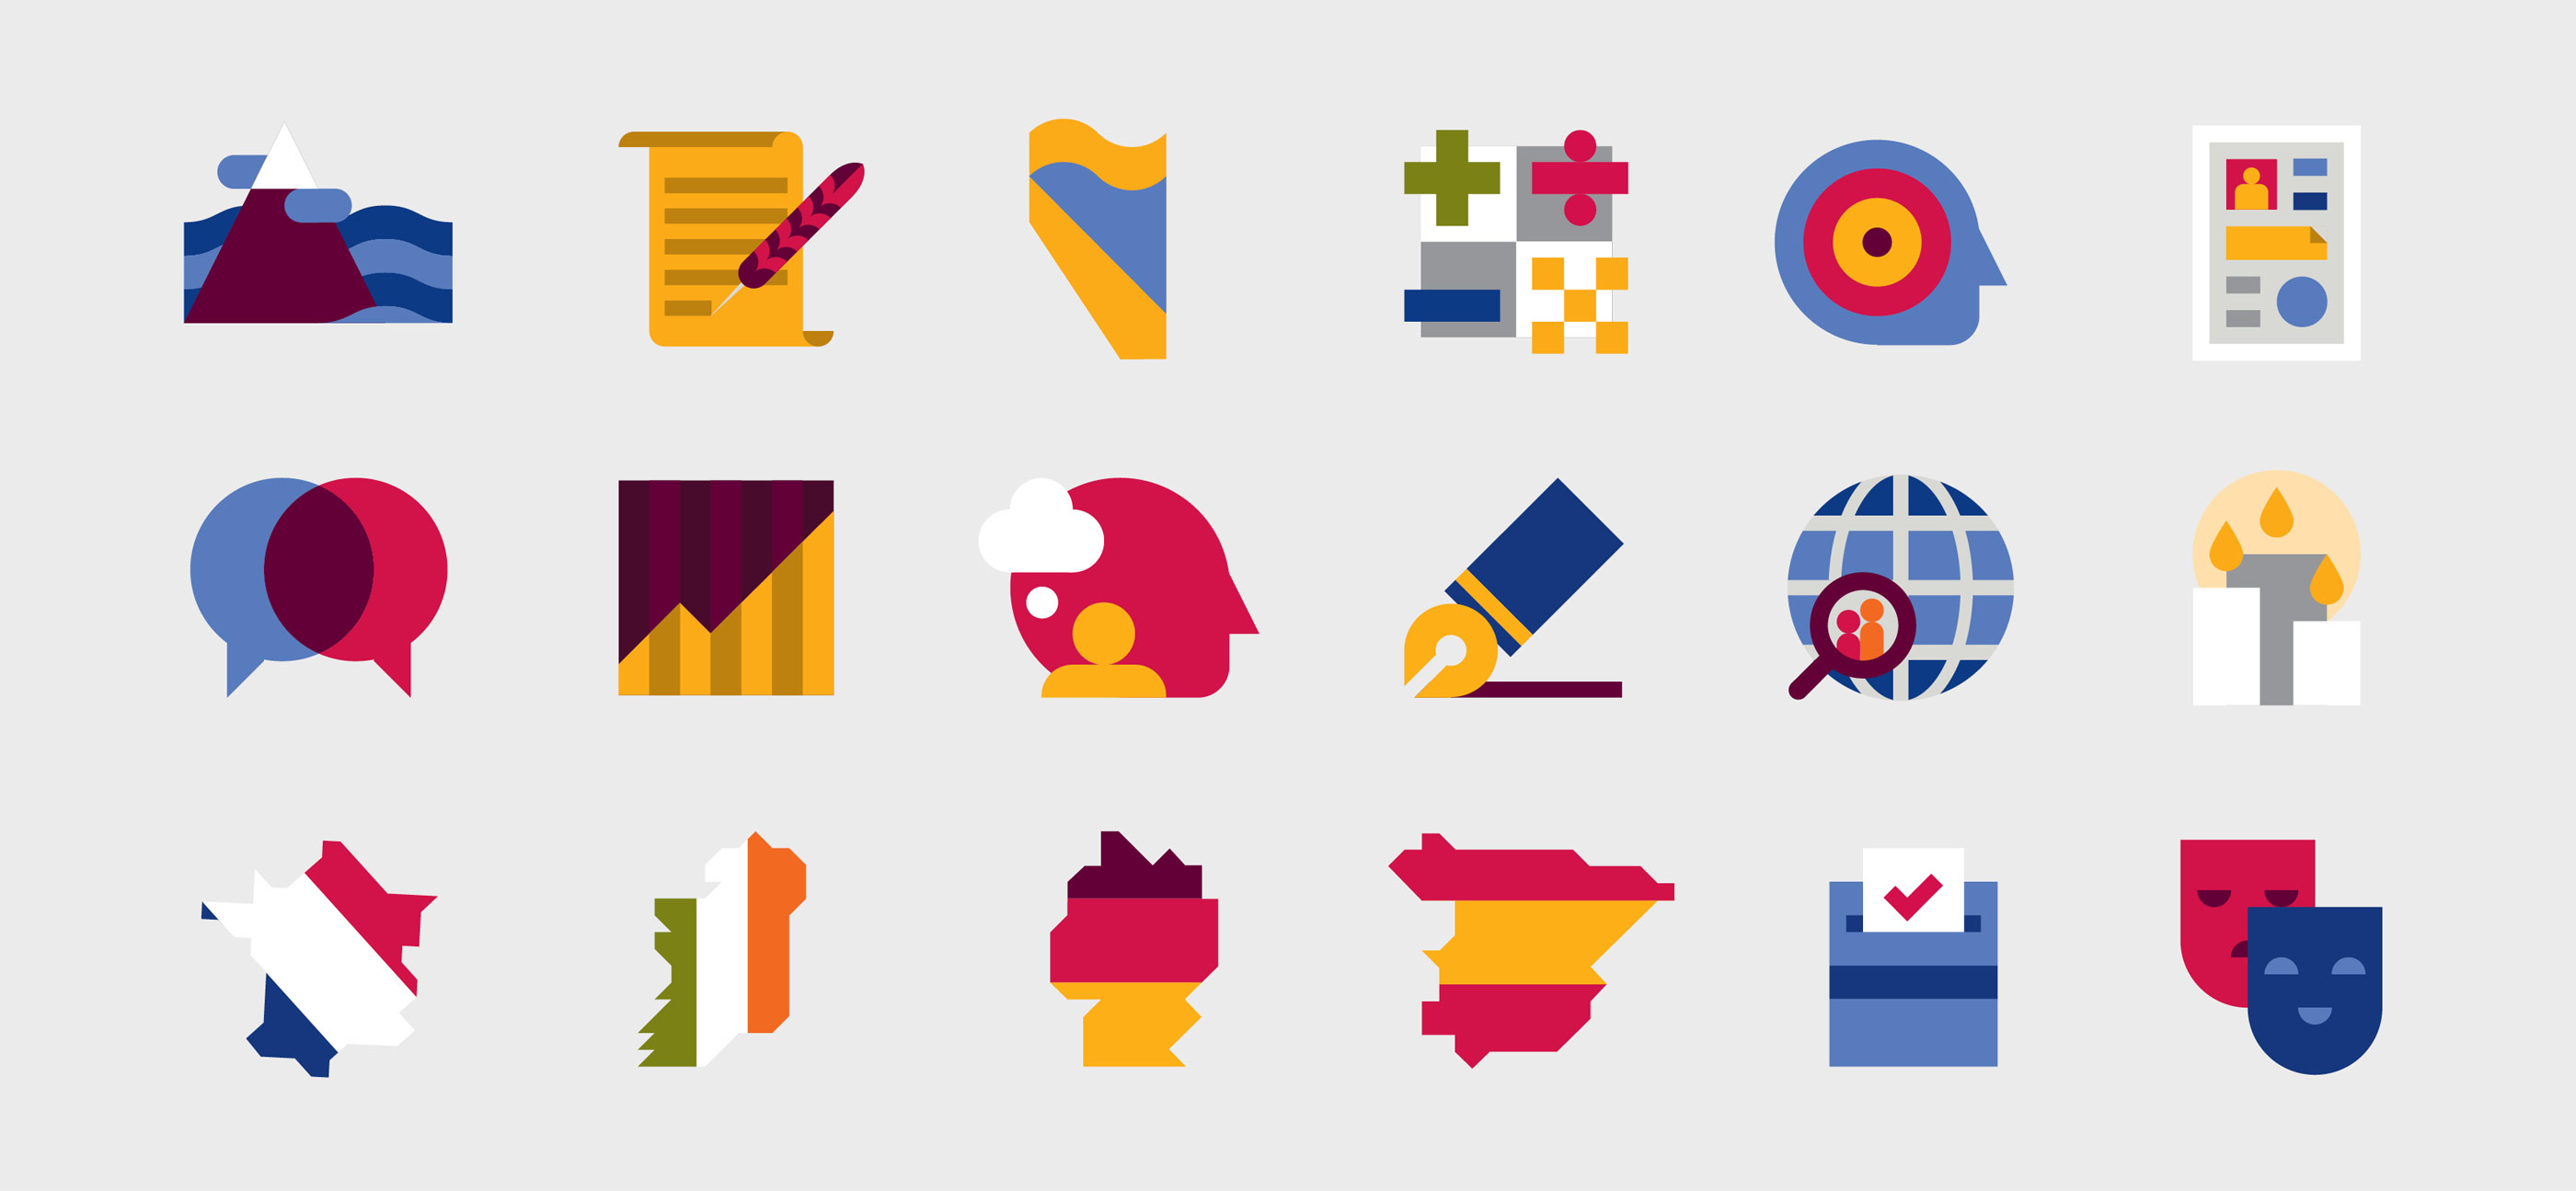 UL Bachelor of Arts campaign graphic design iconography for different subjects